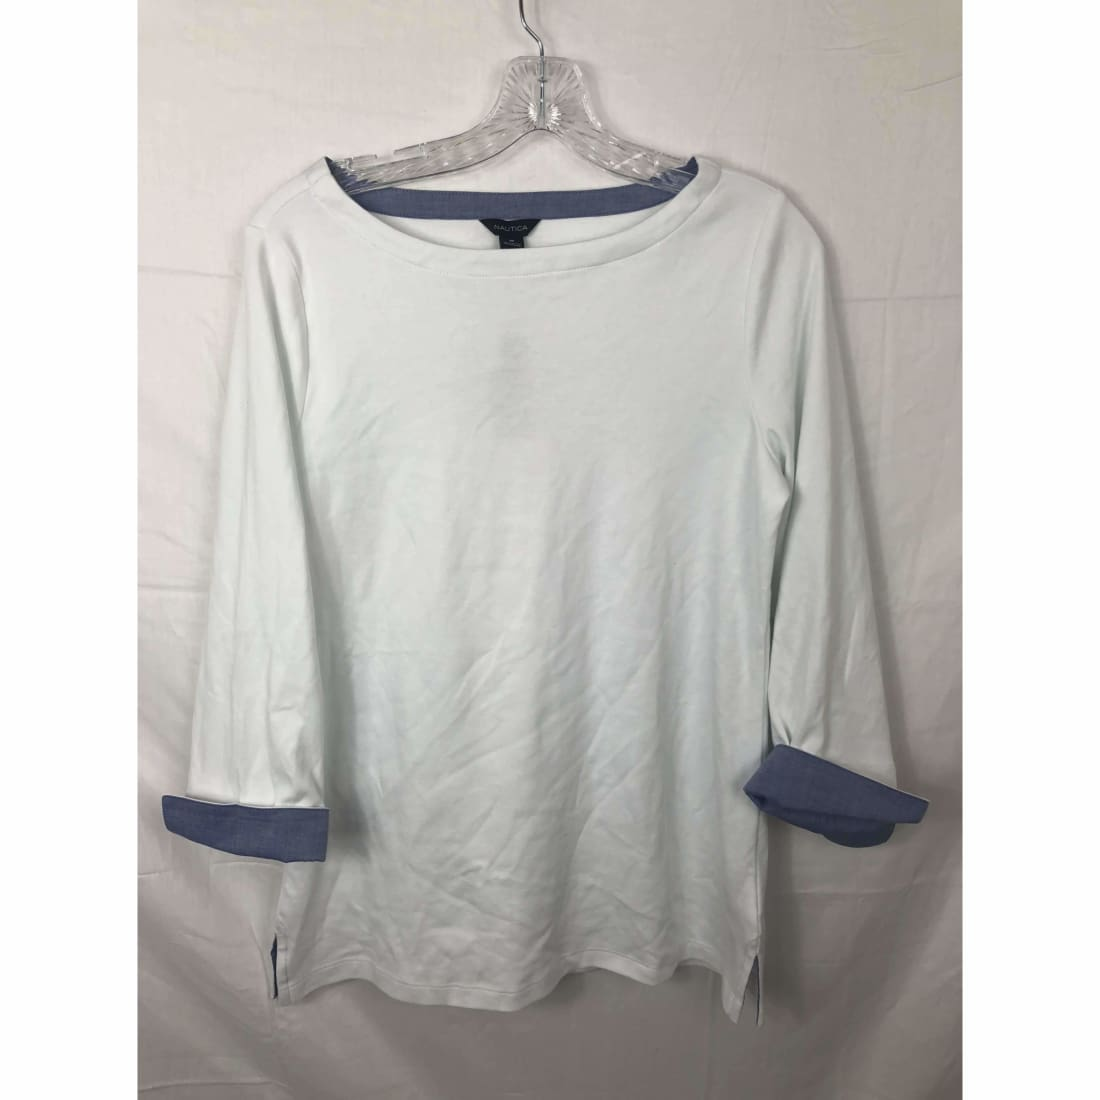 Nautica Womens Chambray 3/4 Sleeve Top M / Bright White Tops & Blouses